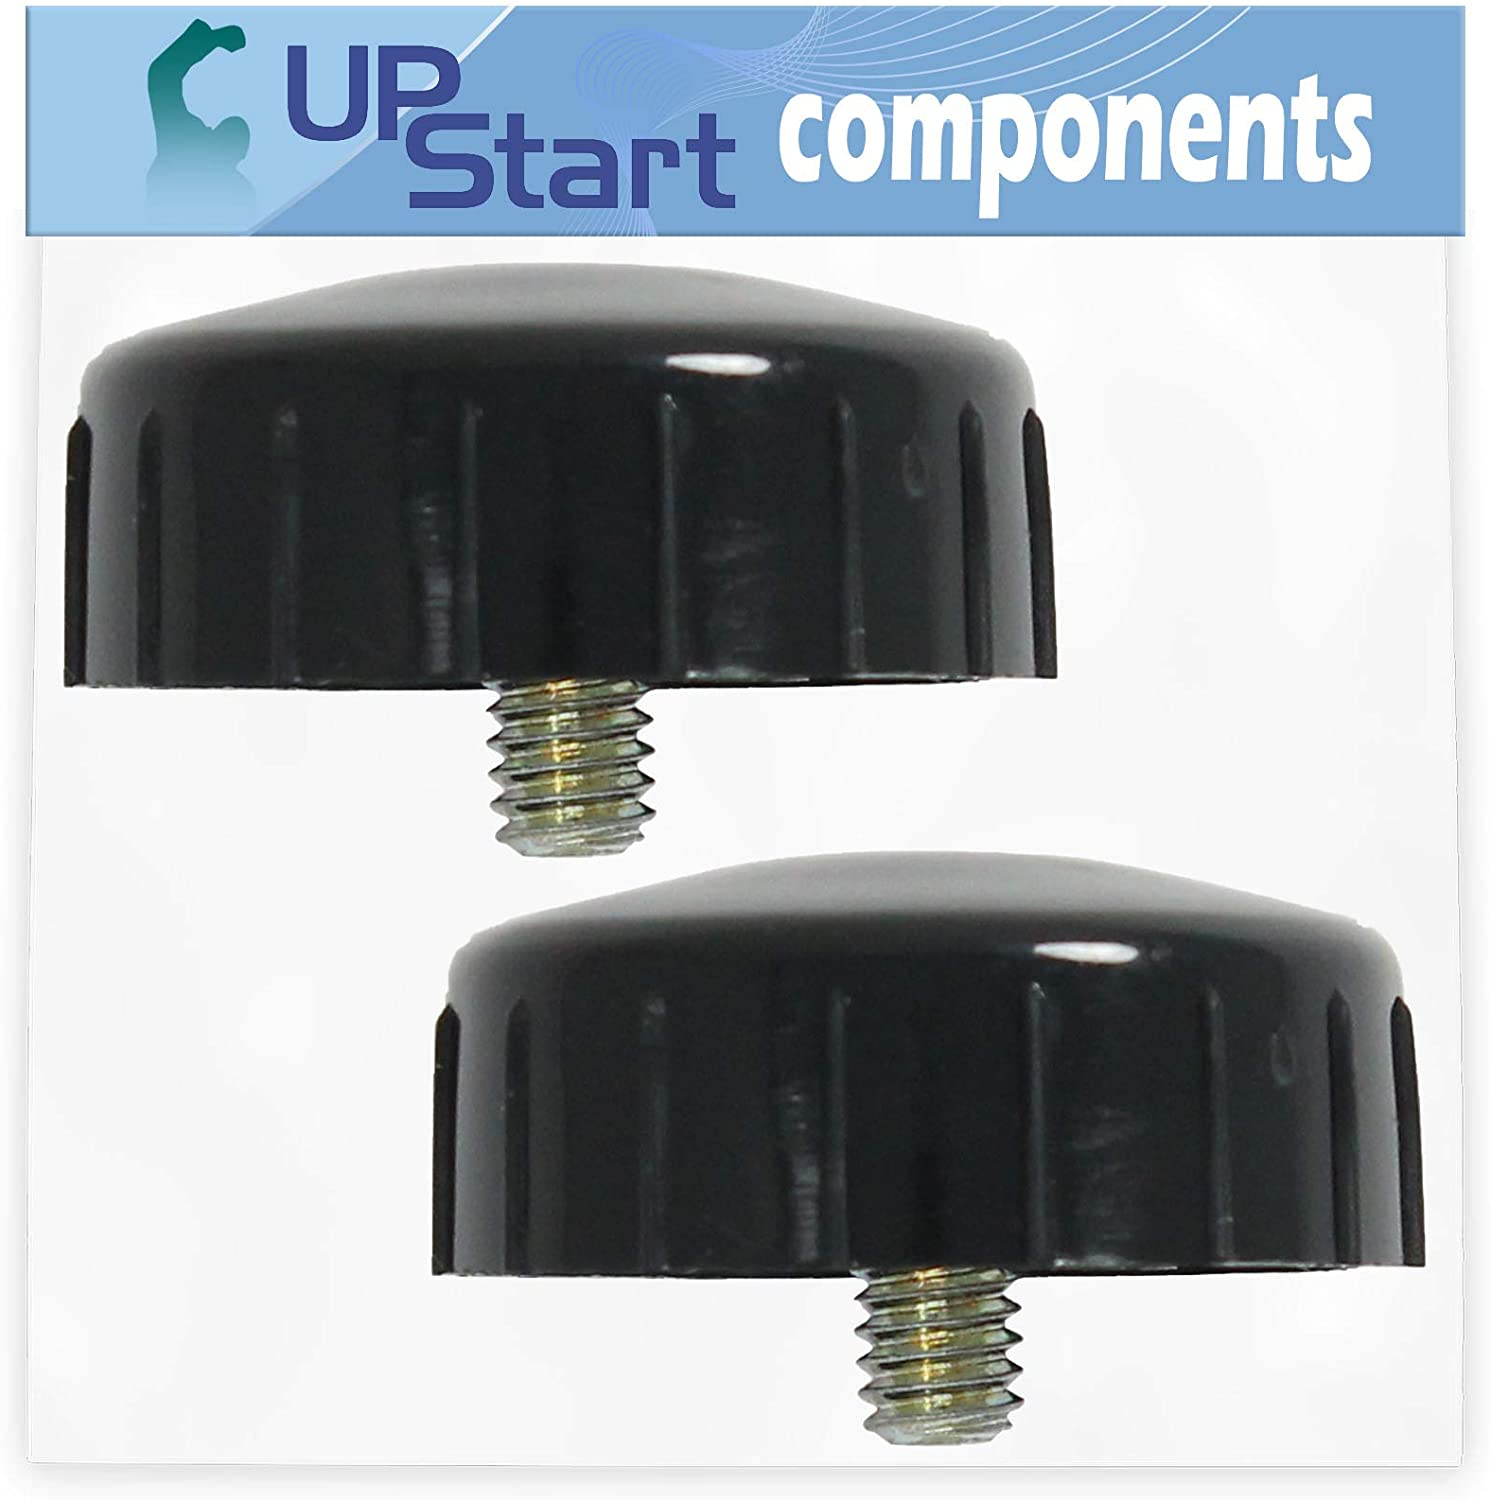 UpStart Components 2-Pack 791-153066B Bump Head Knob Assembly Replacement for MTD 2800m (41BD280G700) (2004) 41BD280G700 Gas String Trimmer - Compatible with 791-153066 Right Hand Bump Head Knob